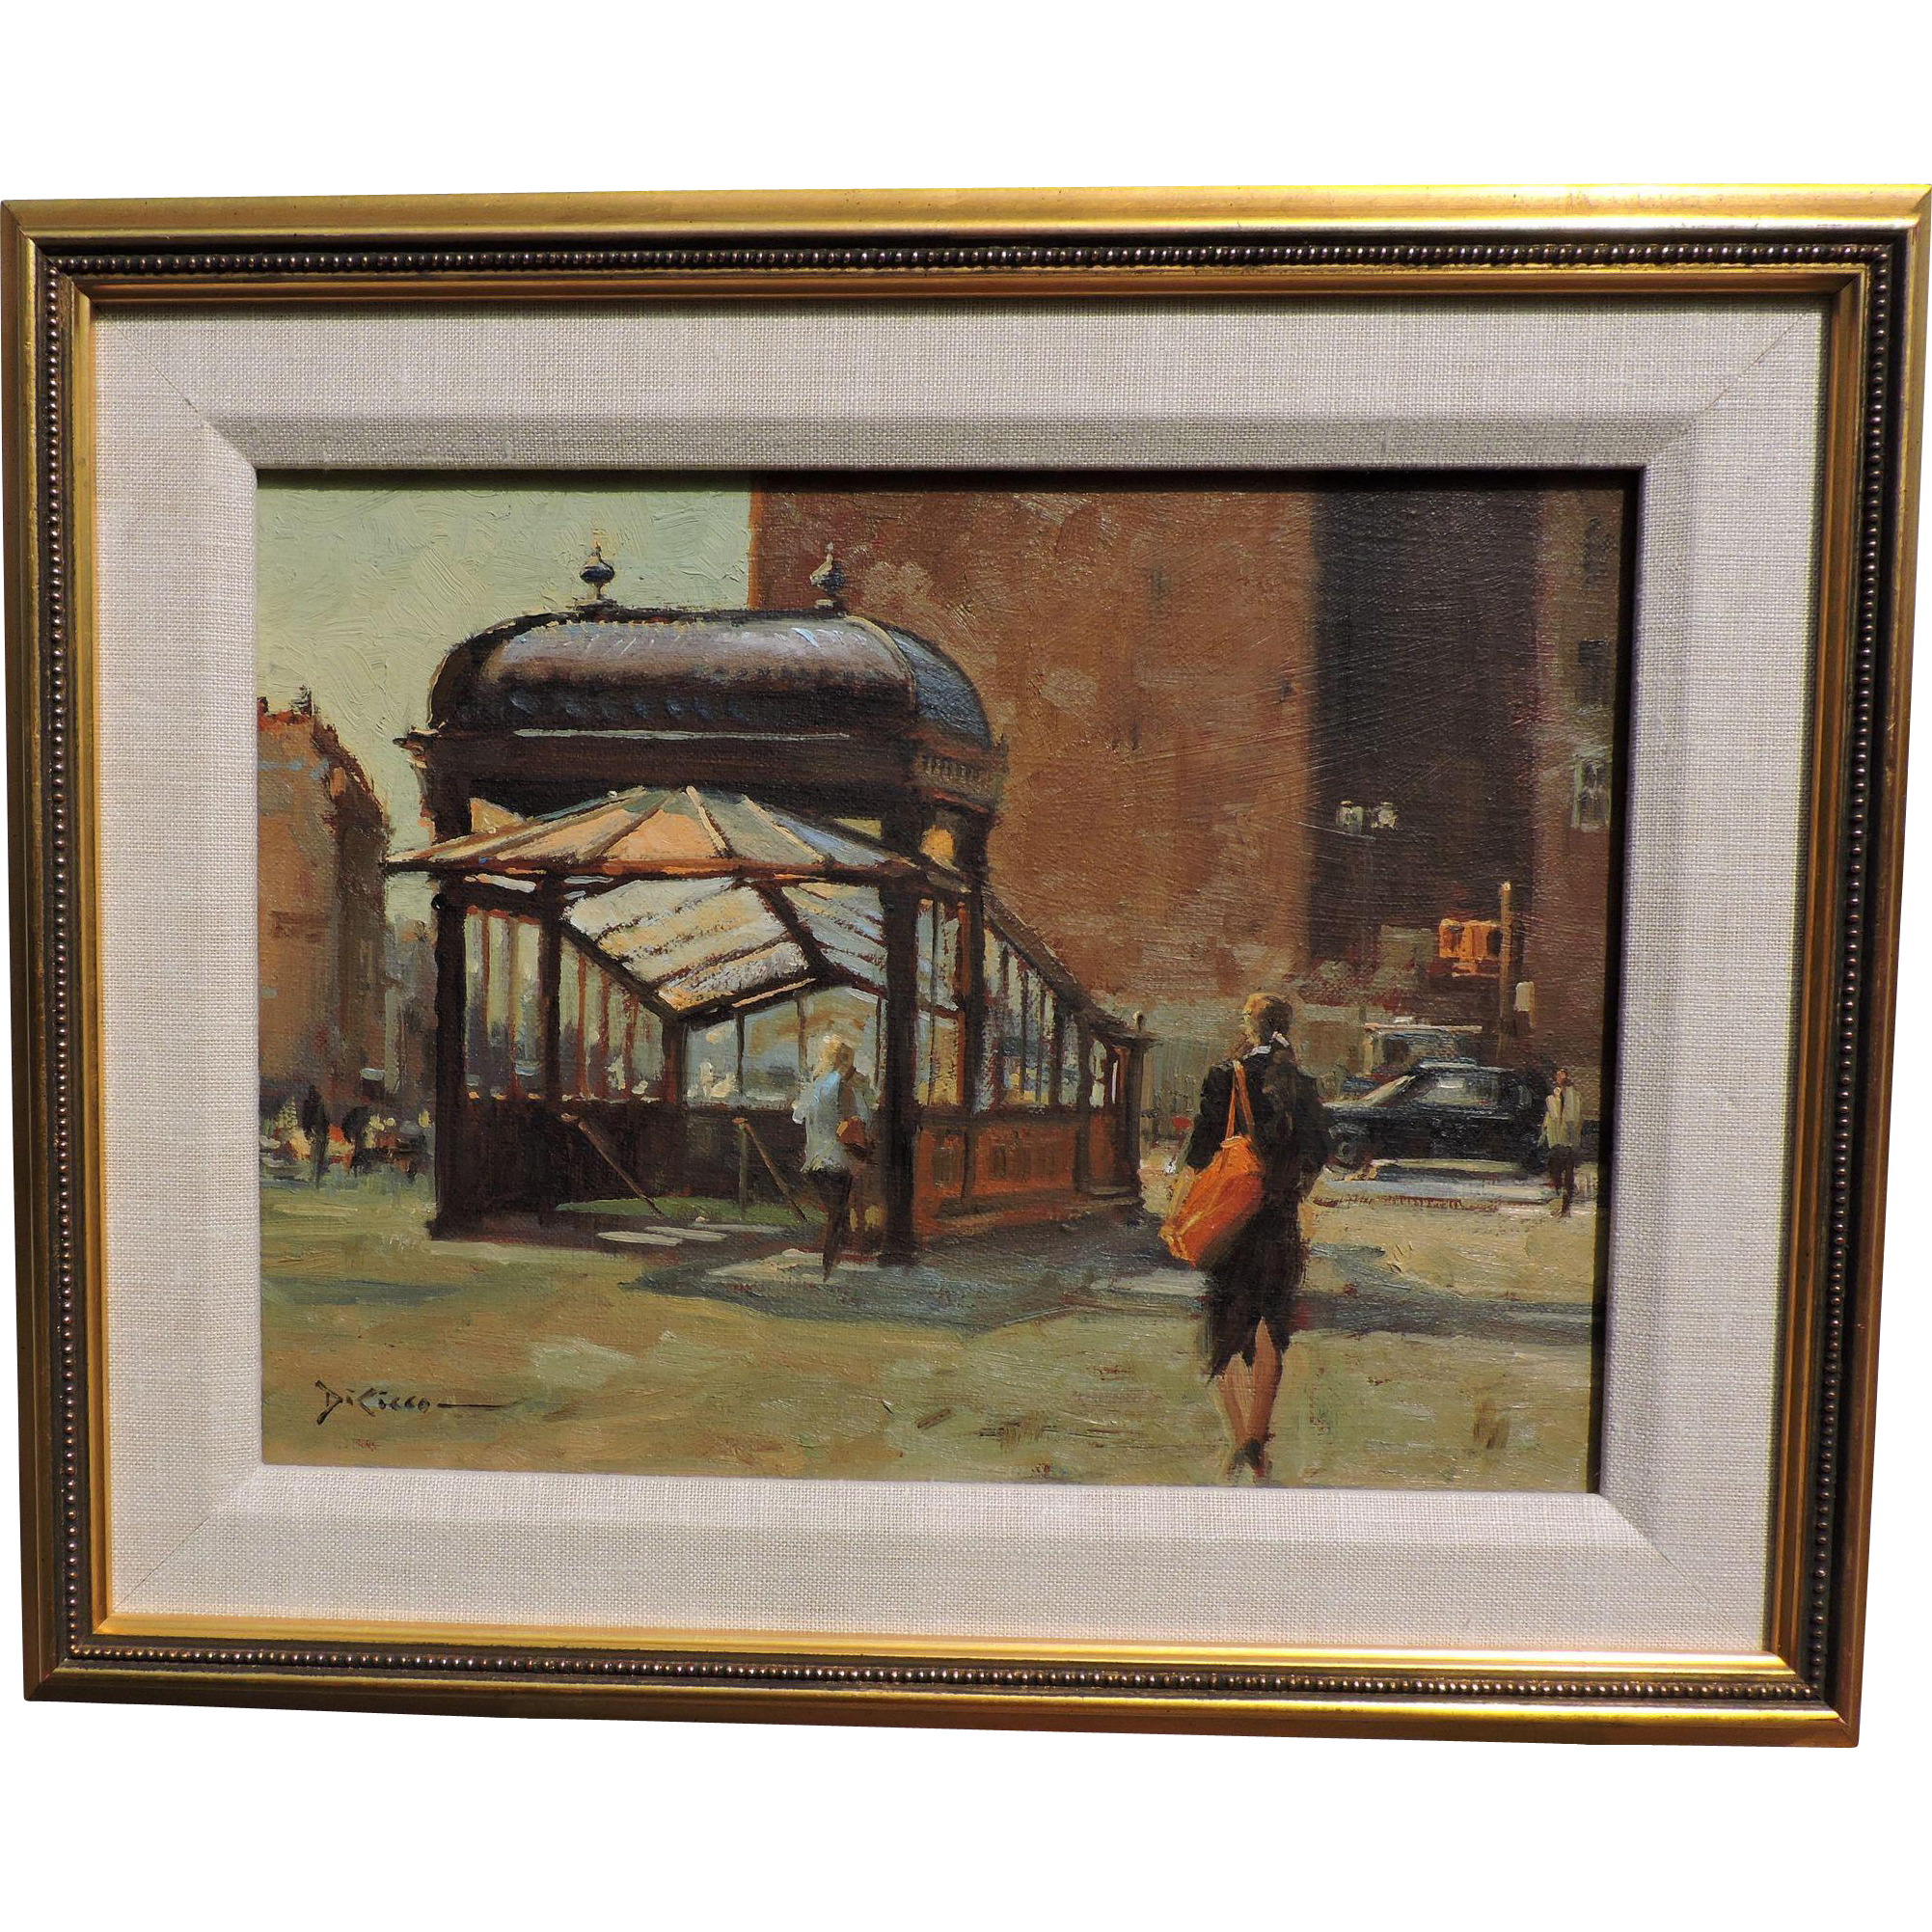 Gil DiCicco oil on canvas painting of activity at a subway entrance in 1950's New York's Astor Place